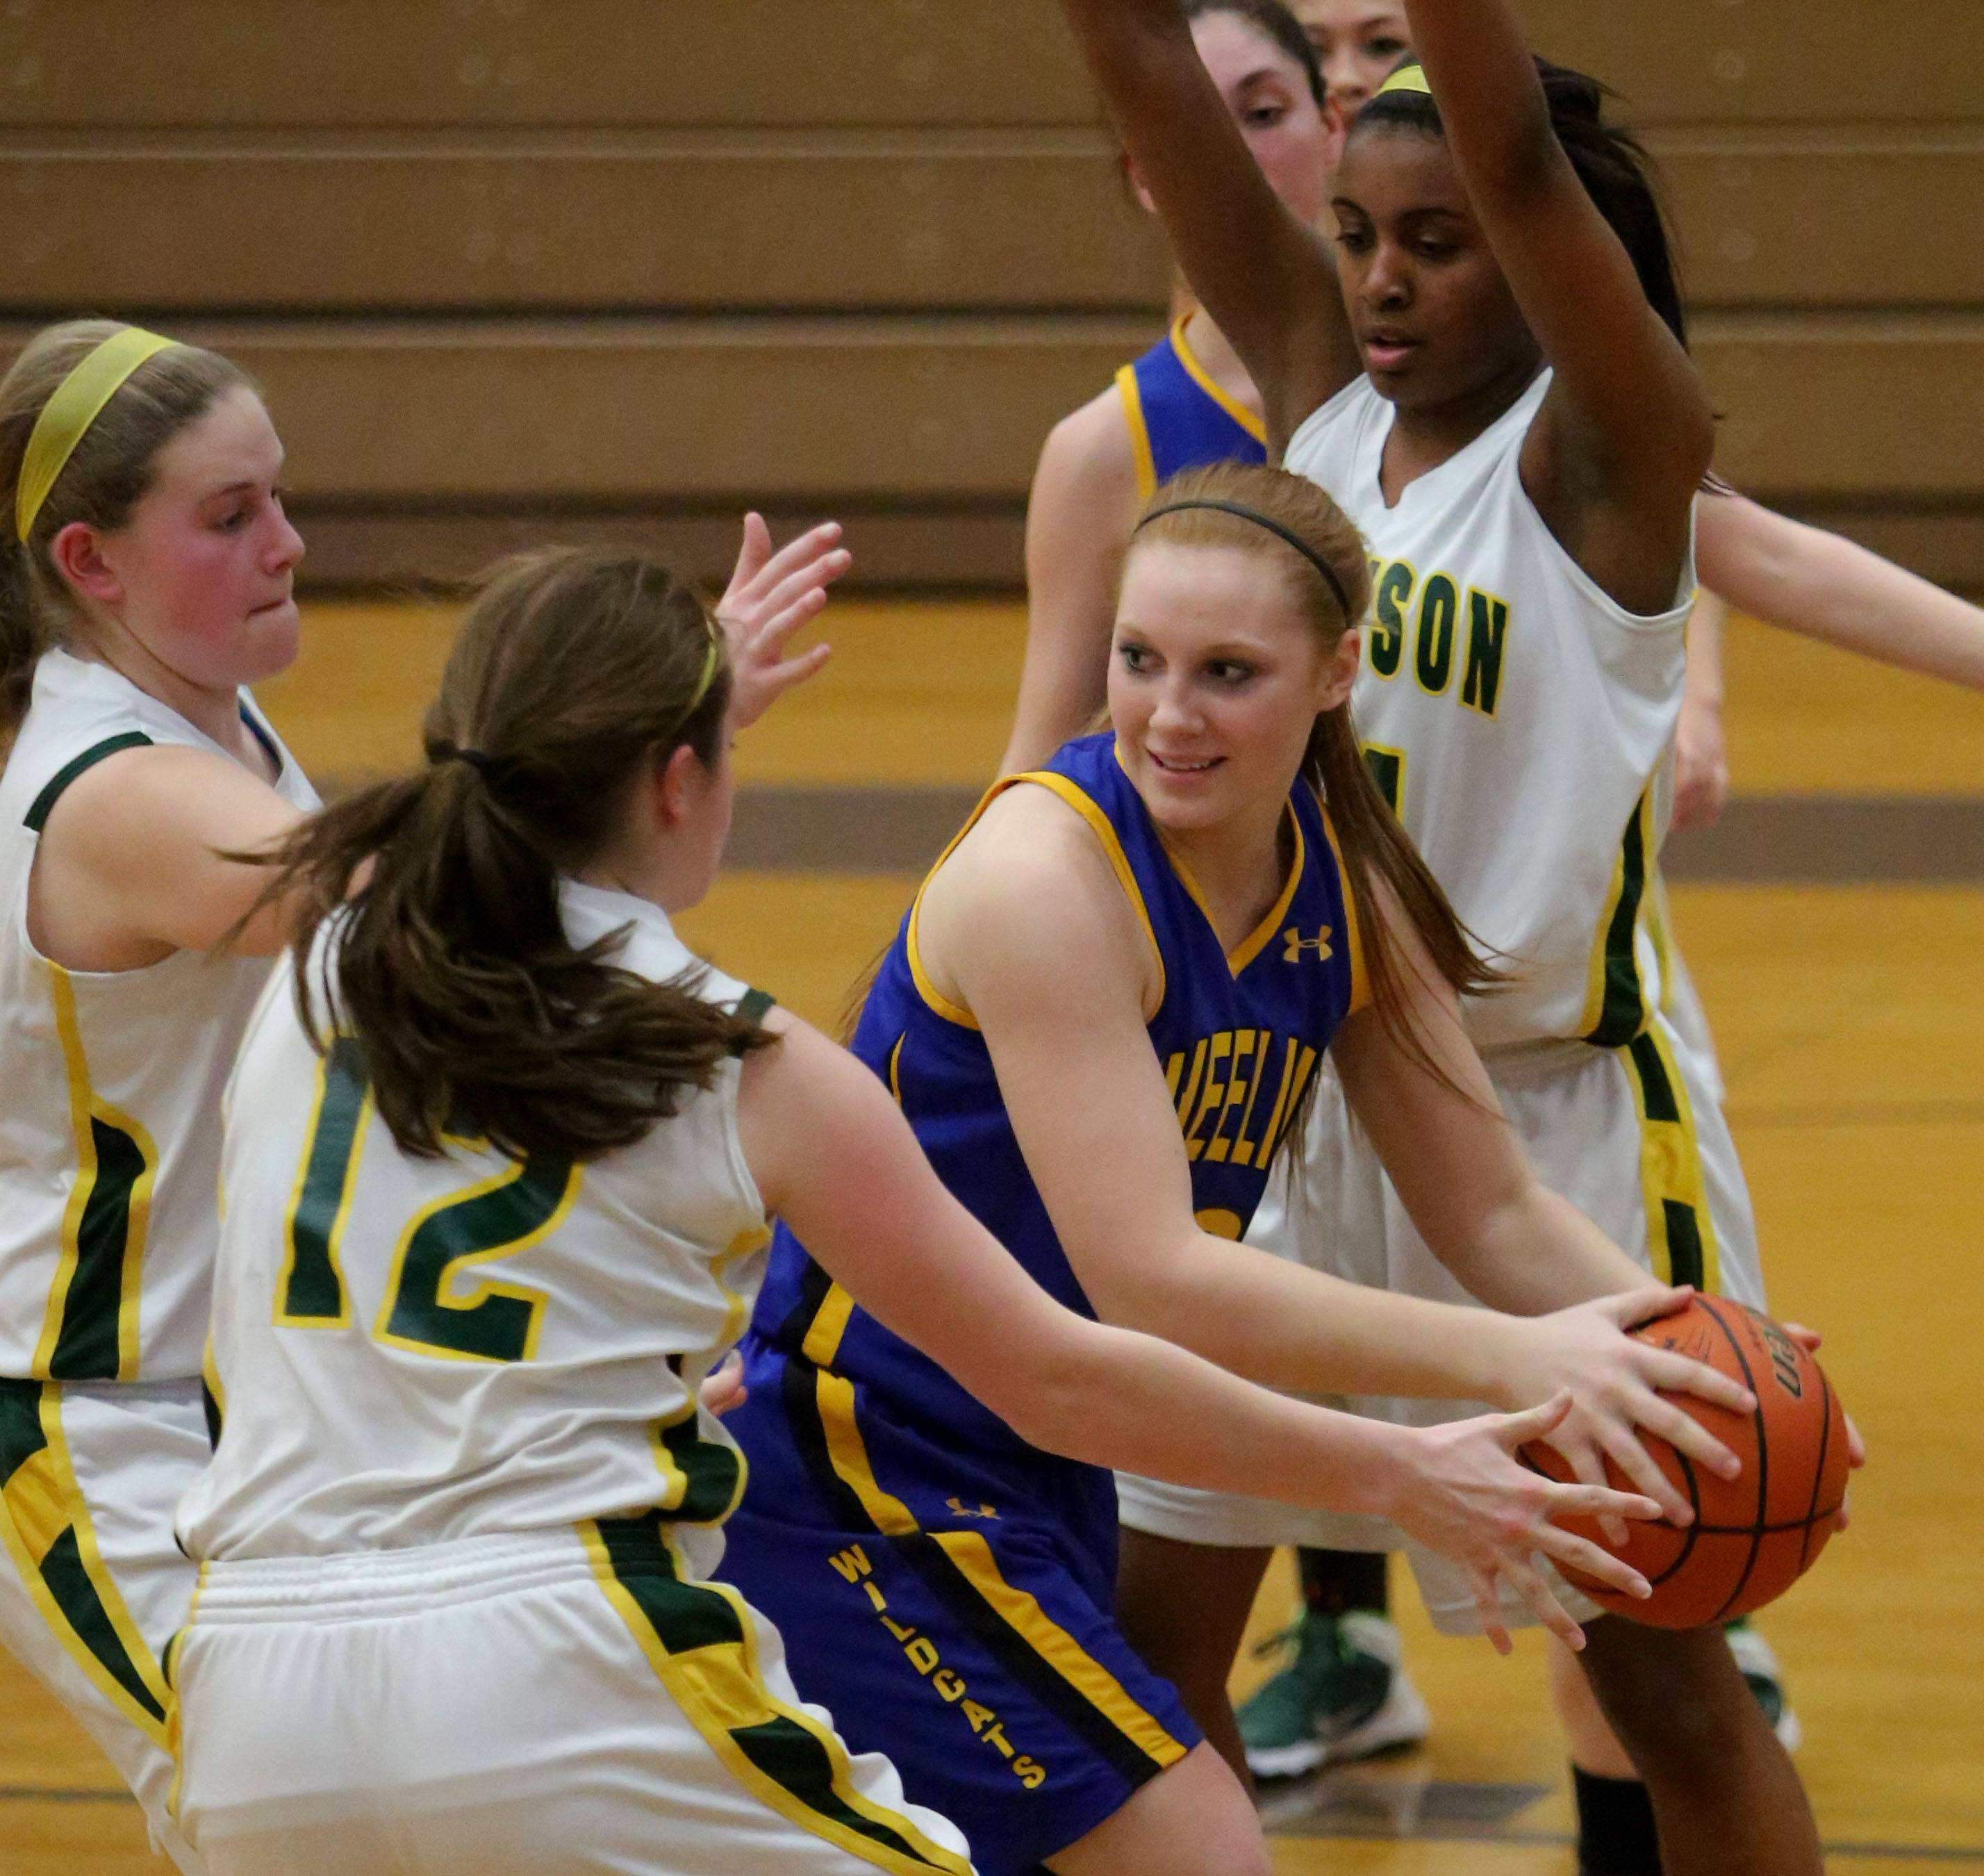 Wheeling's Michaela Vasey gets trapped by a host of Stevenson players during Class 4A regional semifinal play at Waukegan on Wednesday.